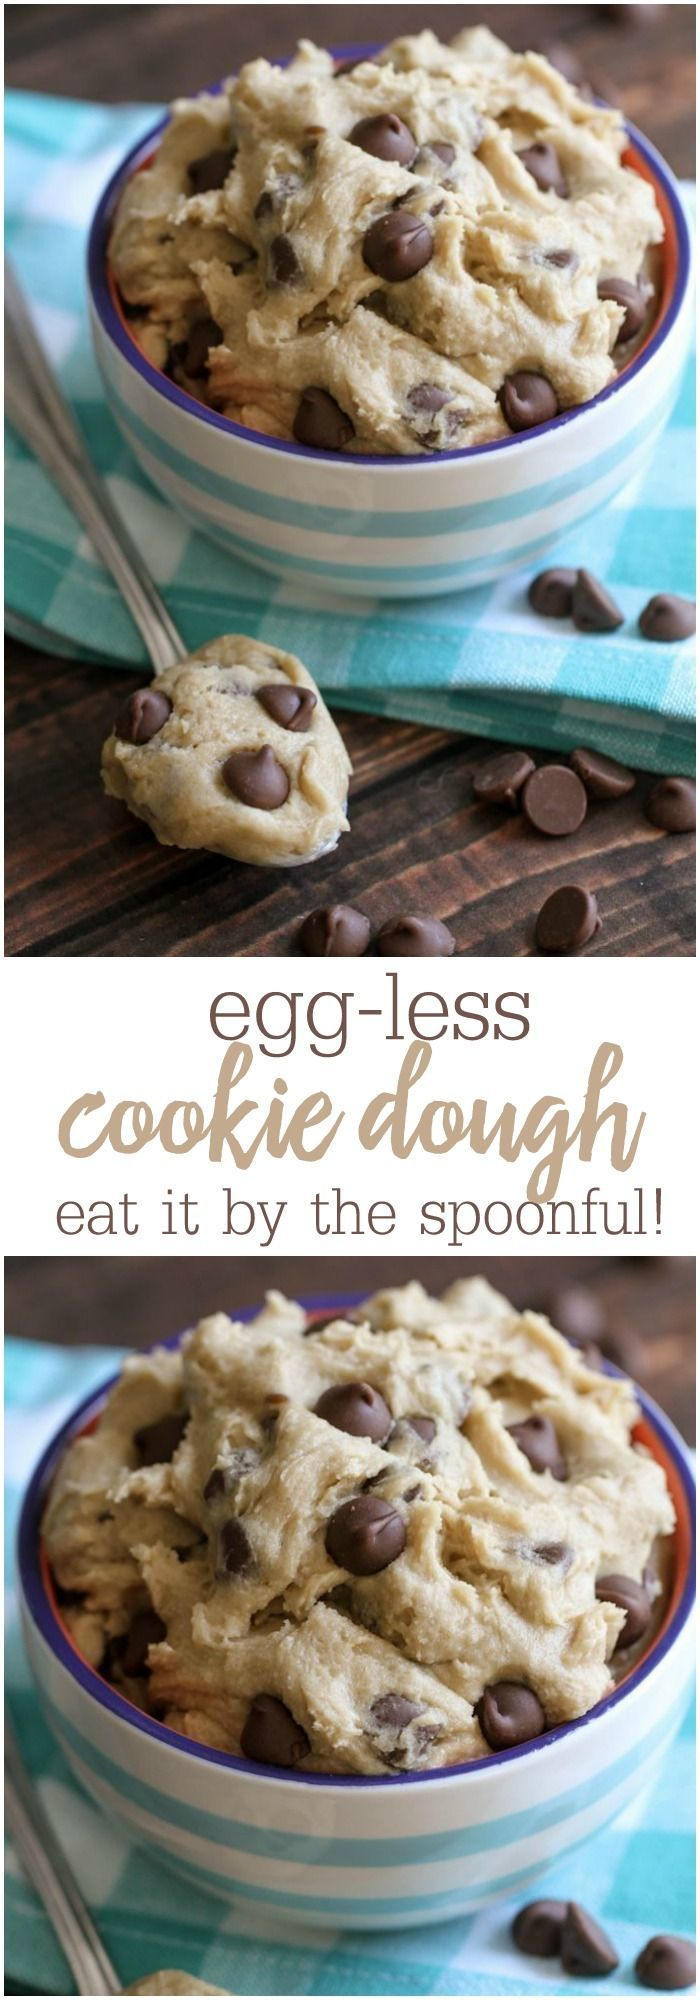 Grab a Spoon!! Egg-less Cookie Dough recipe for all the cookie dough lovers! { lilluna.com }